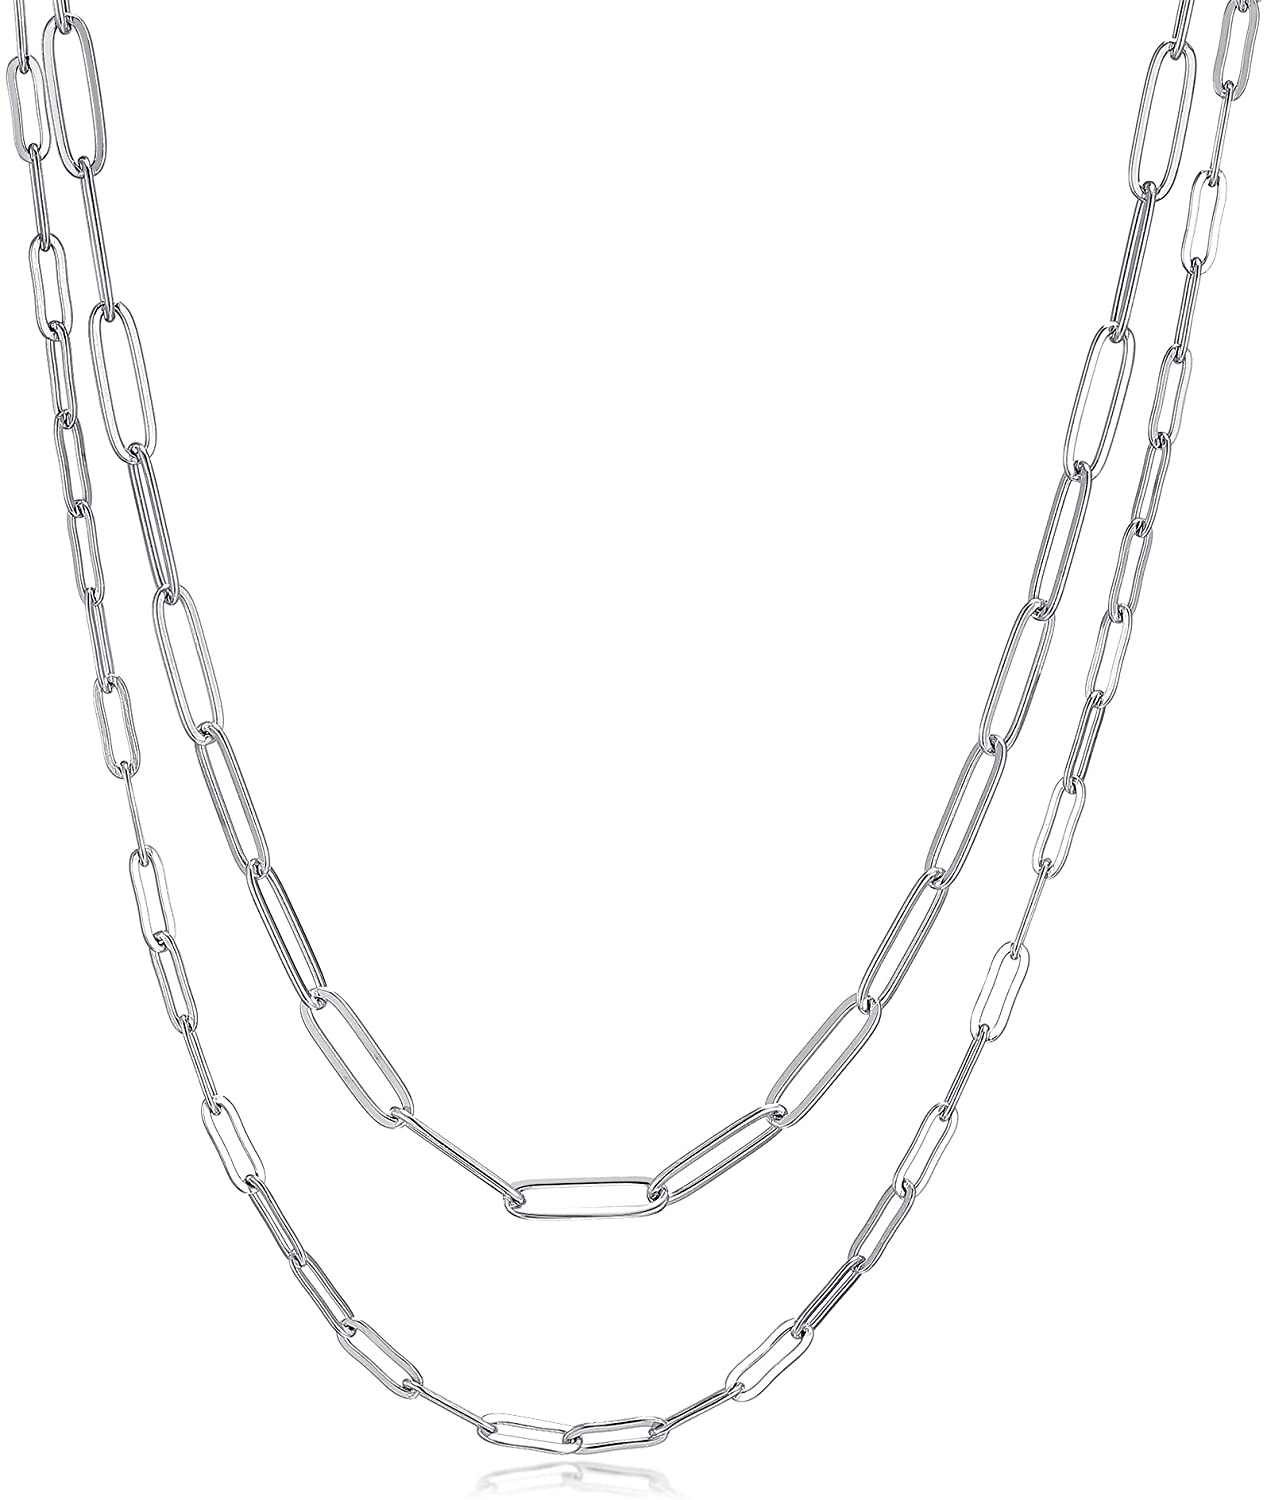 RWQIAN 18k Gold Paperclip Chain Link Necklace Dainty Paperclip Link Chain Layered Necklace Oval Link Chains Initial Necklaces Set for Women Girls (18K Silver Necklace): Clothing